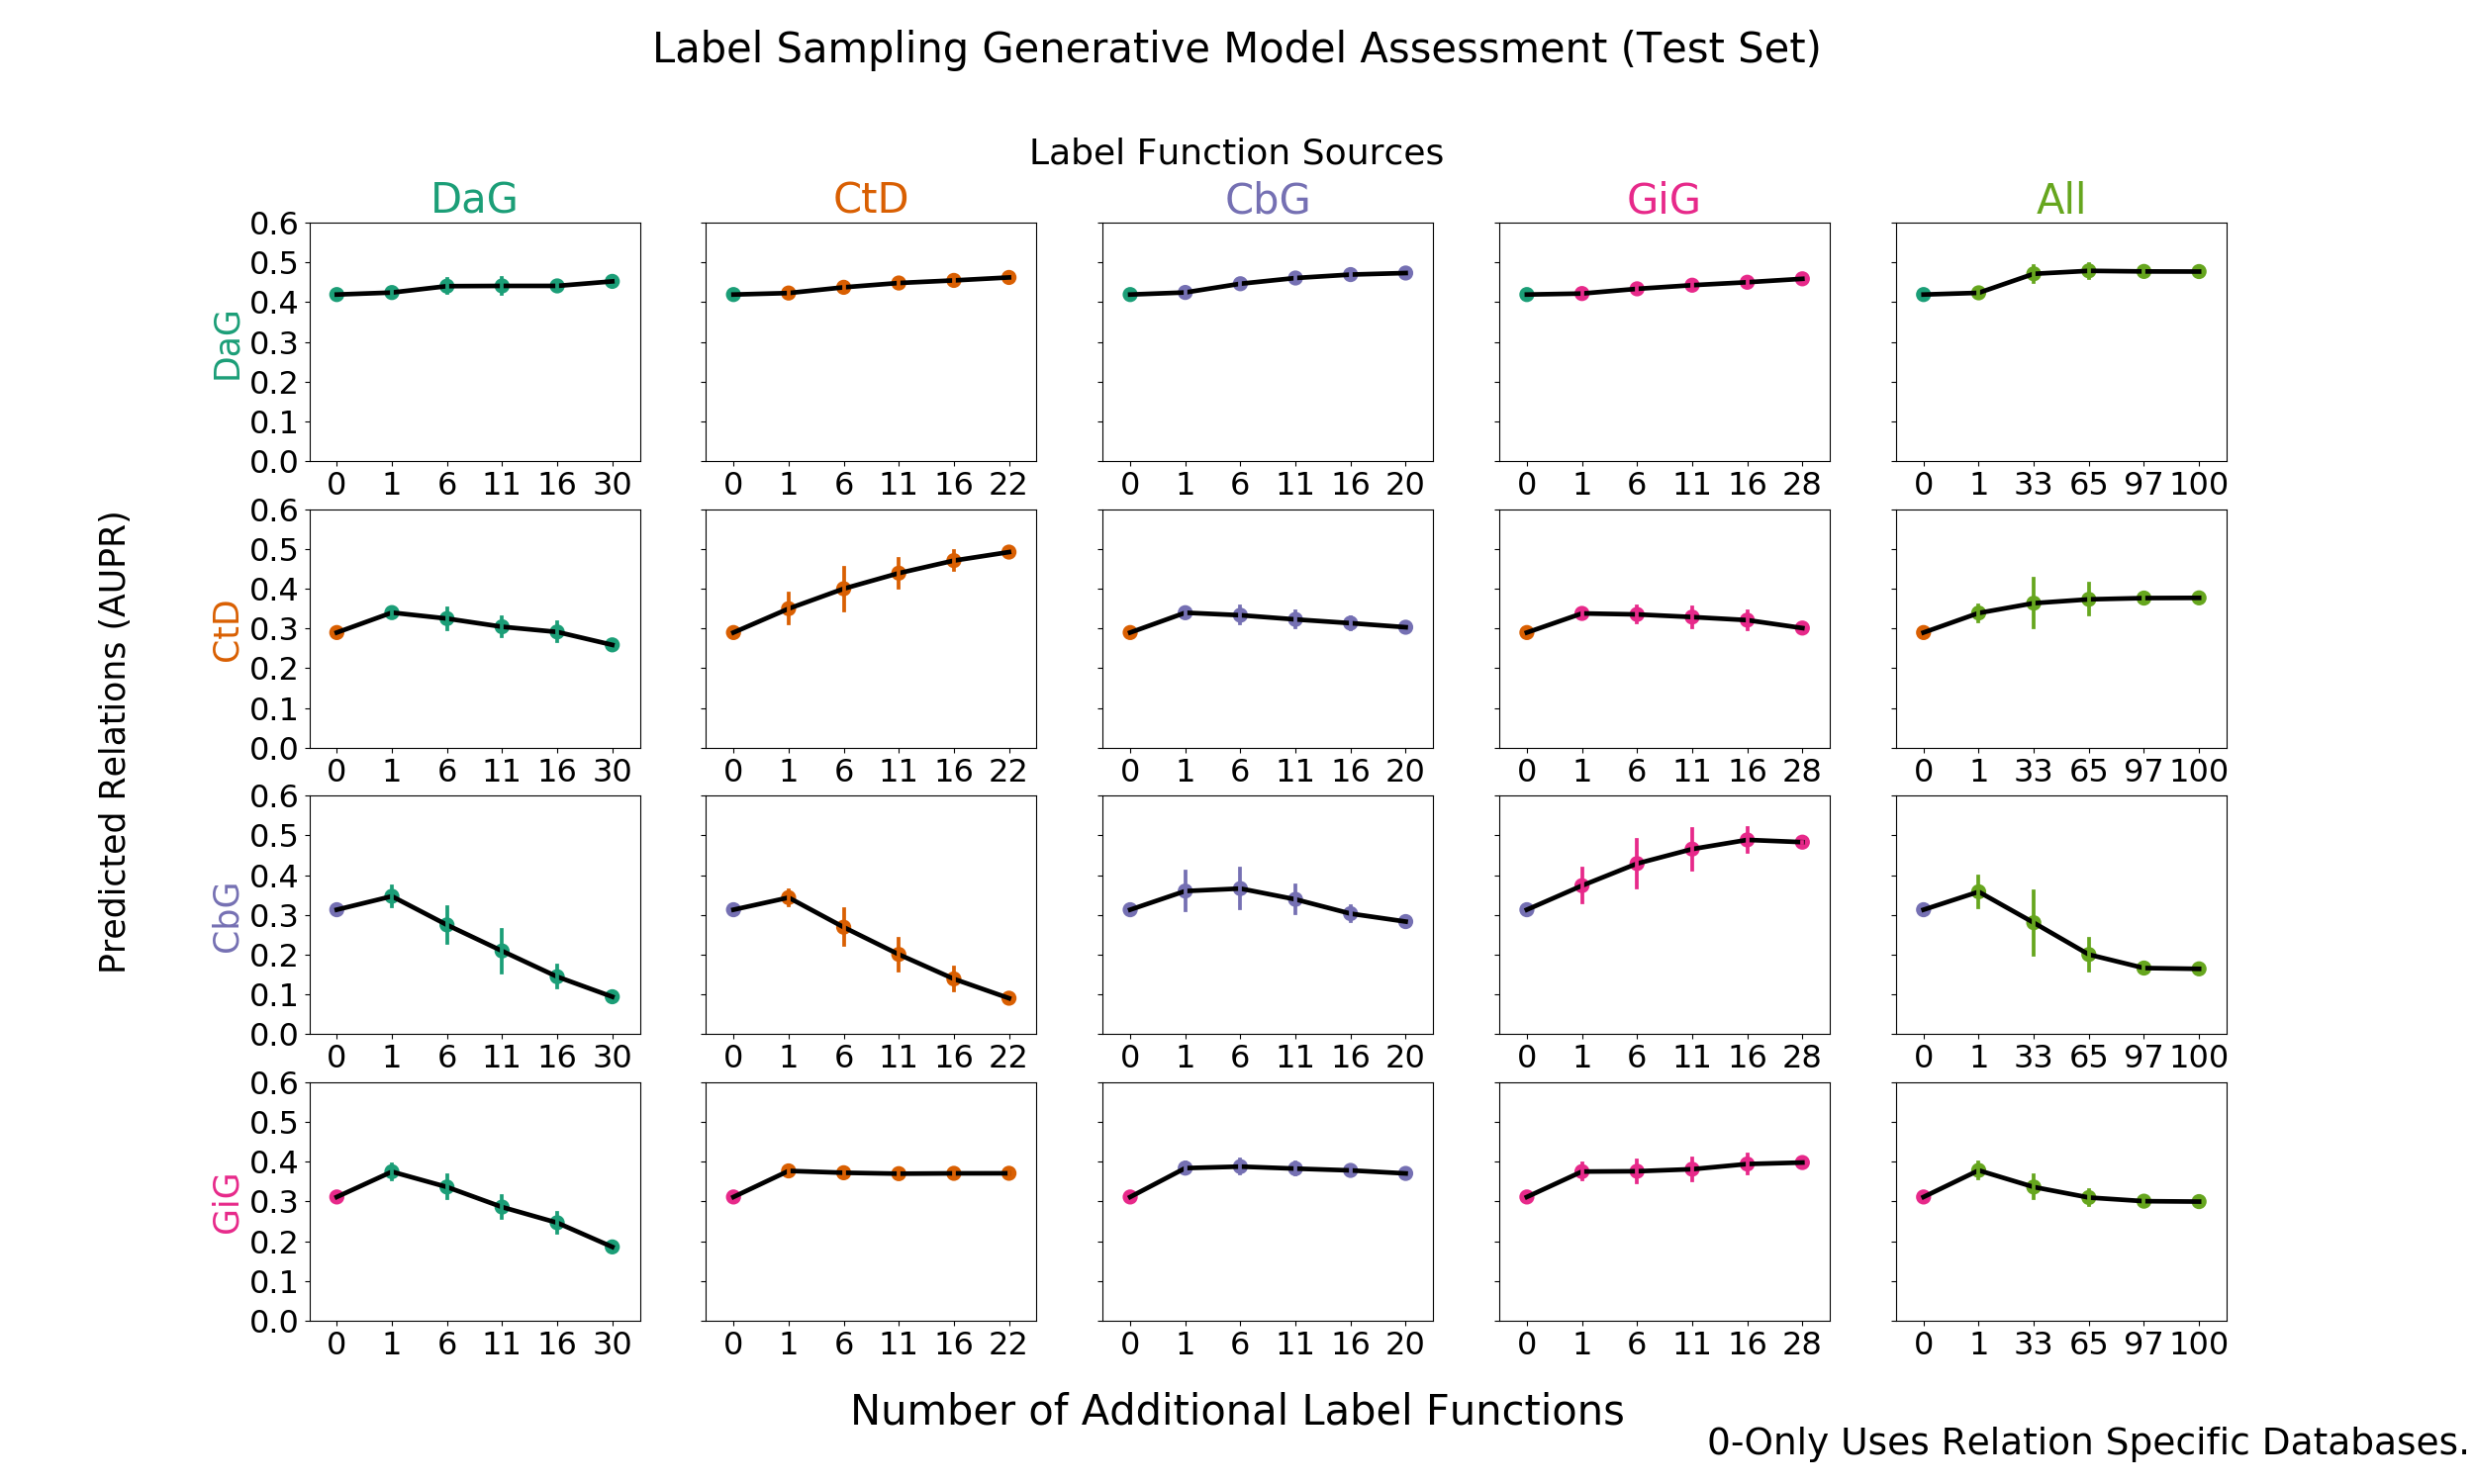 Figure 5: Grid of AUPR scores for each generative model trained on randomly sampled label functions. The rows depict the relationship each model is trying to predict and the columns are the edge type specific sources from which each label function is sampled. For example, the top-left most square depicts the generative model predicting DaG sentences, while randomly sampling label functions designed to predict the DaG relationship. The square towards the right depicts the generative model predicting DaG sentences, while randomly sampling label functions designed to predict the CtD relationship. This pattern continues filling out the rest of the grid. The right most column consists of pooling every relationship specific label function and proceeding as above.